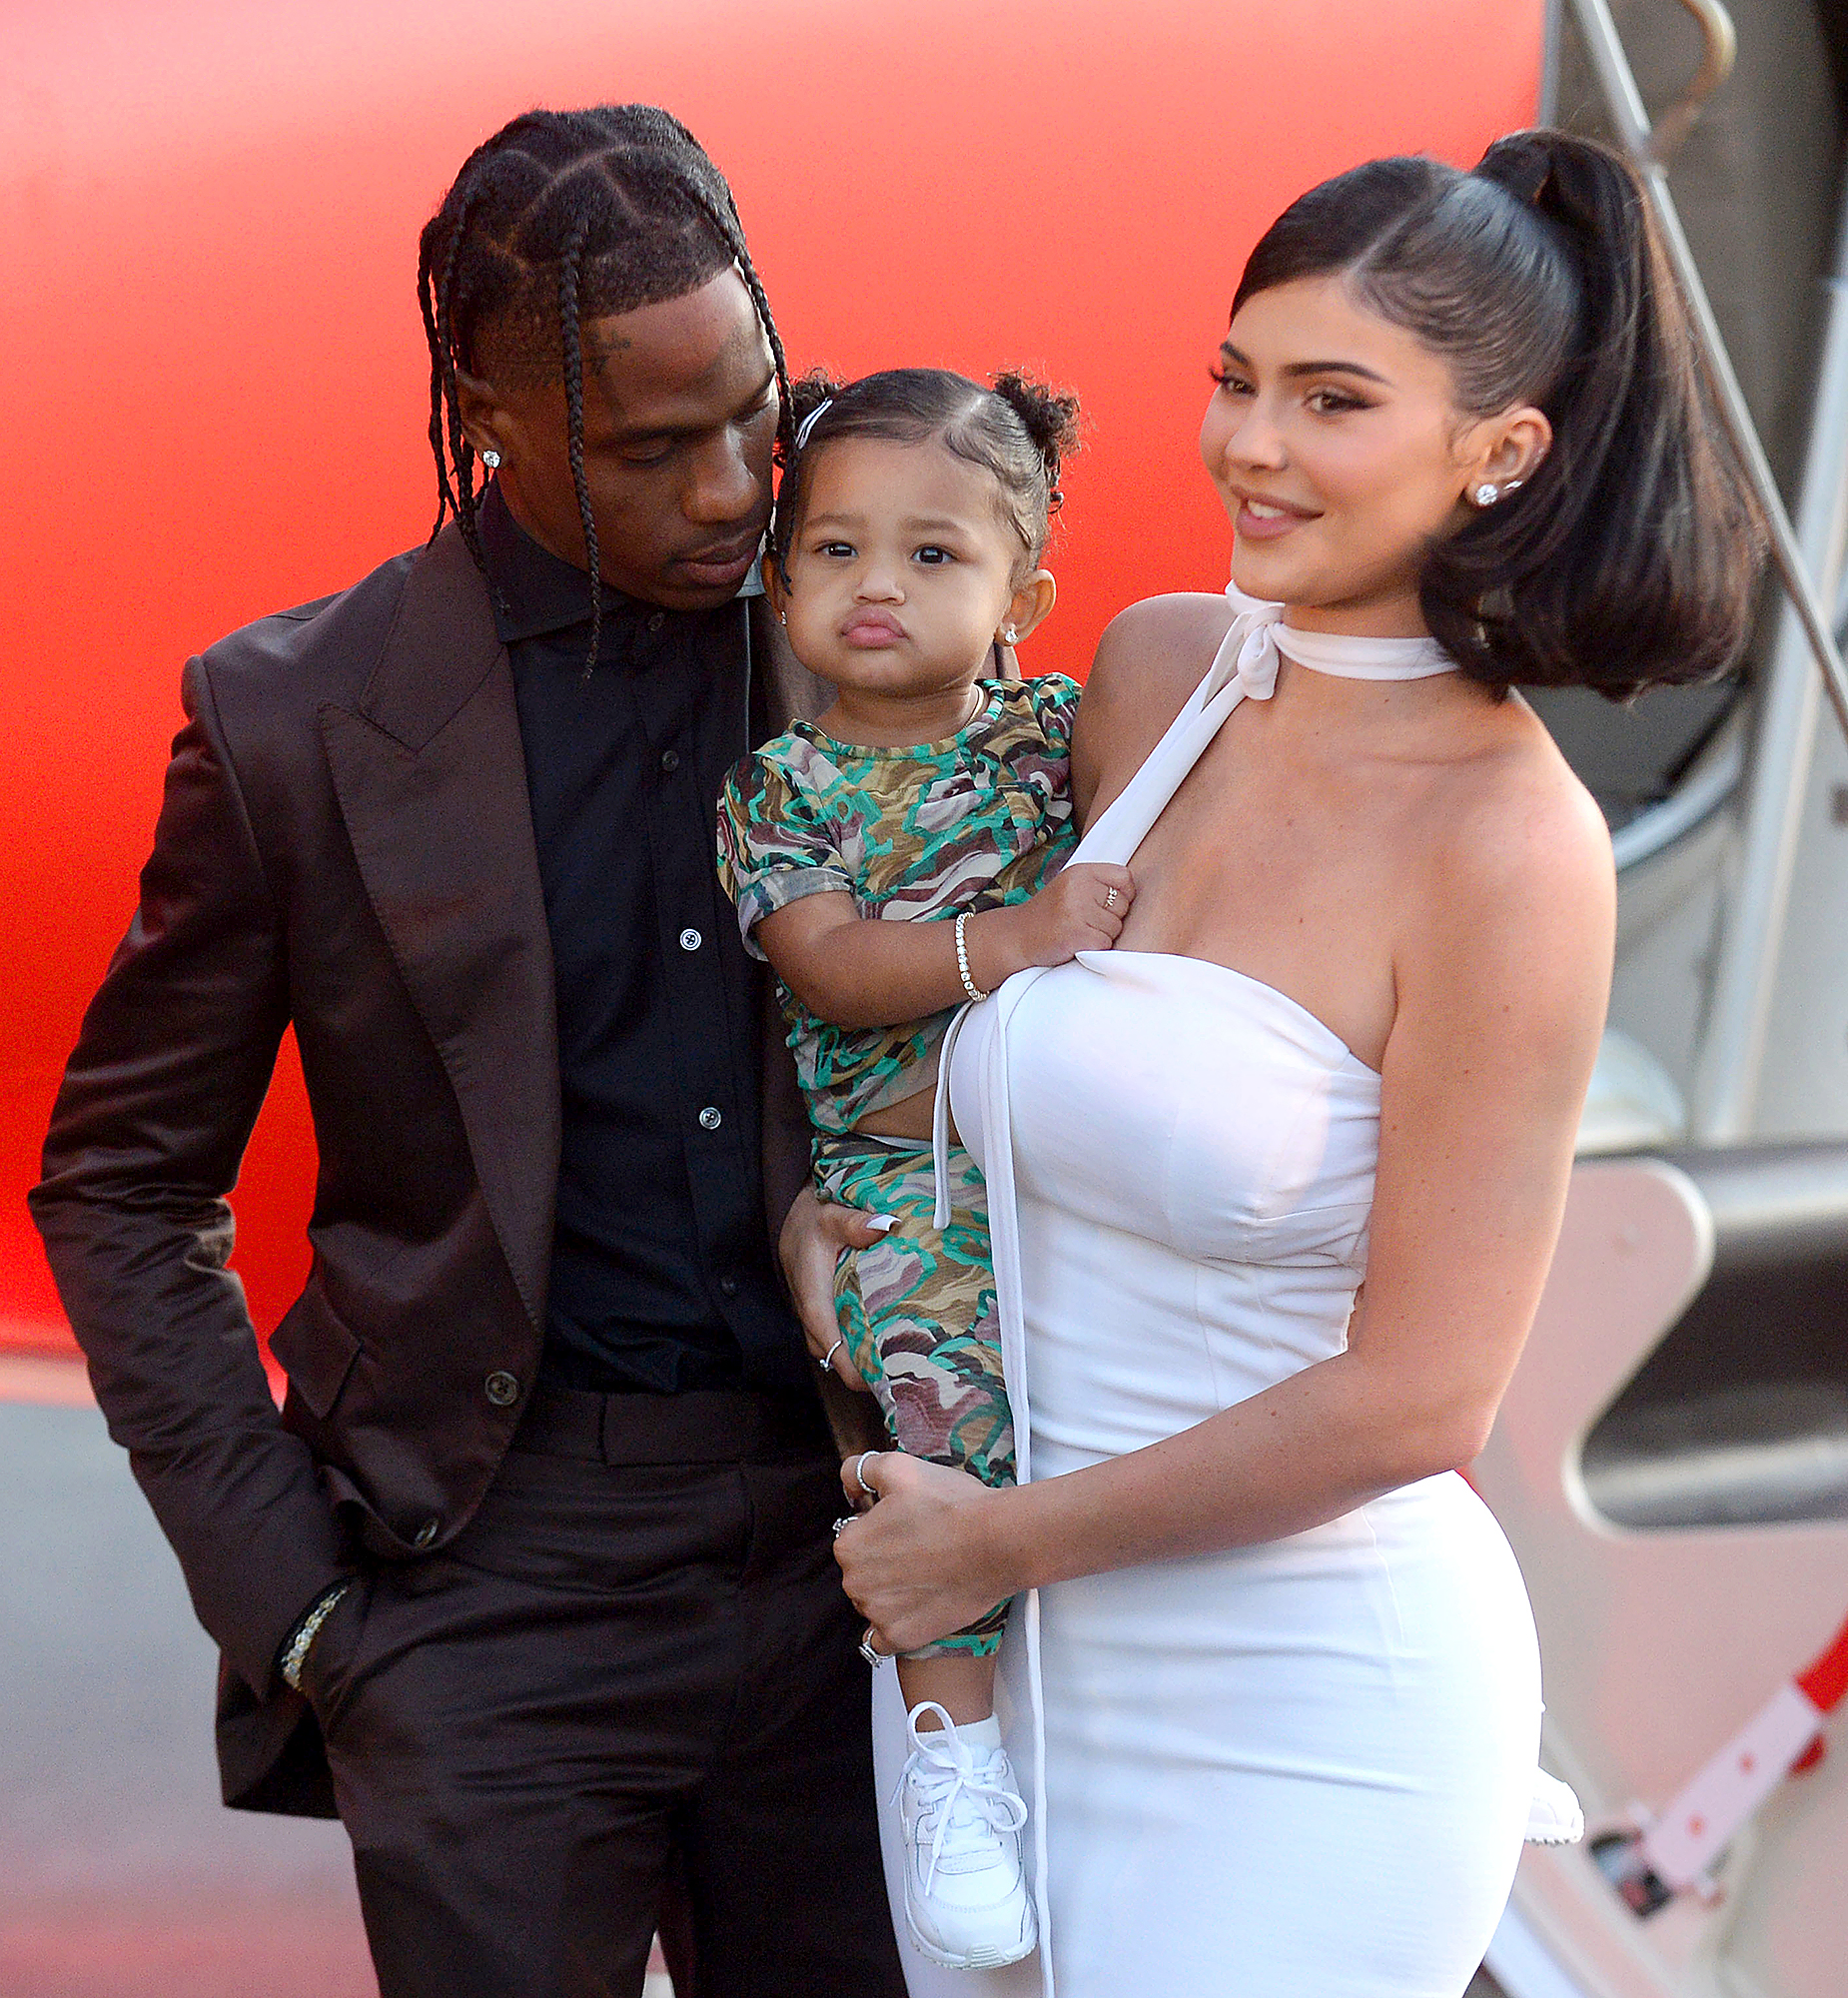 Kylie-Wanted-a-Second-Baby-With-Travis-Scott-Before-Their-Split